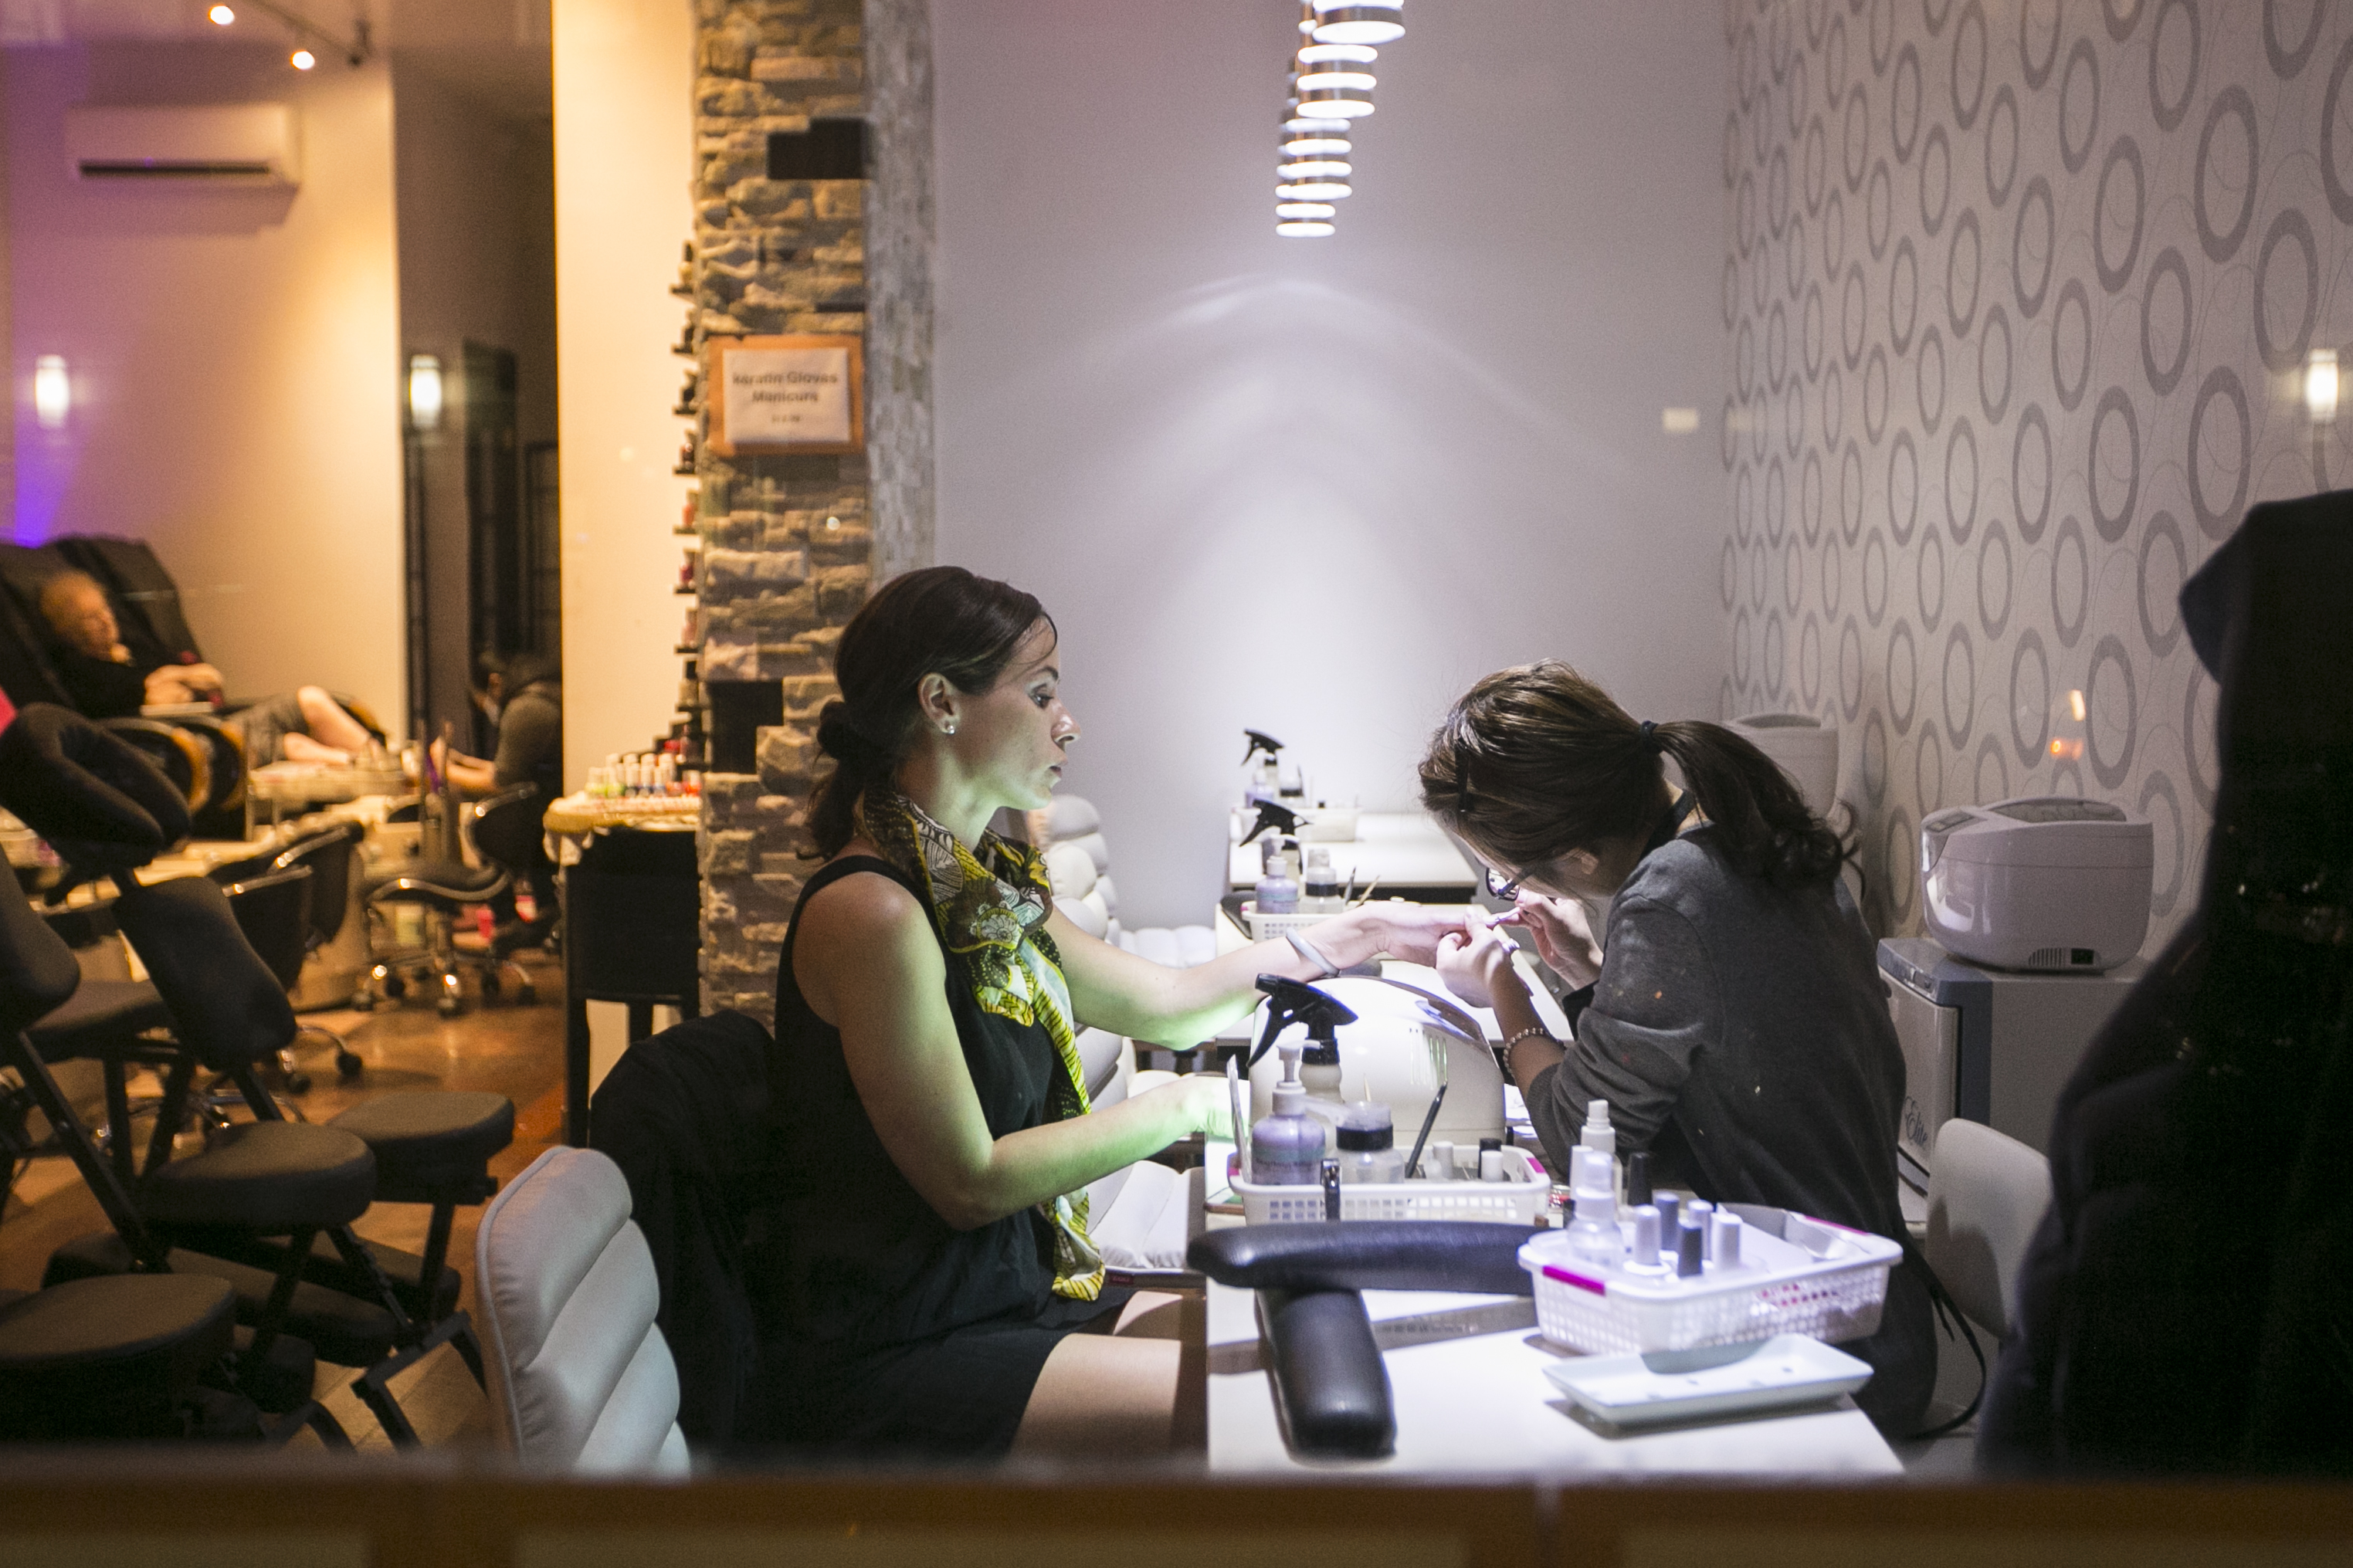 A Woman Gets Her Nails Done At Nail Salon In New York On March